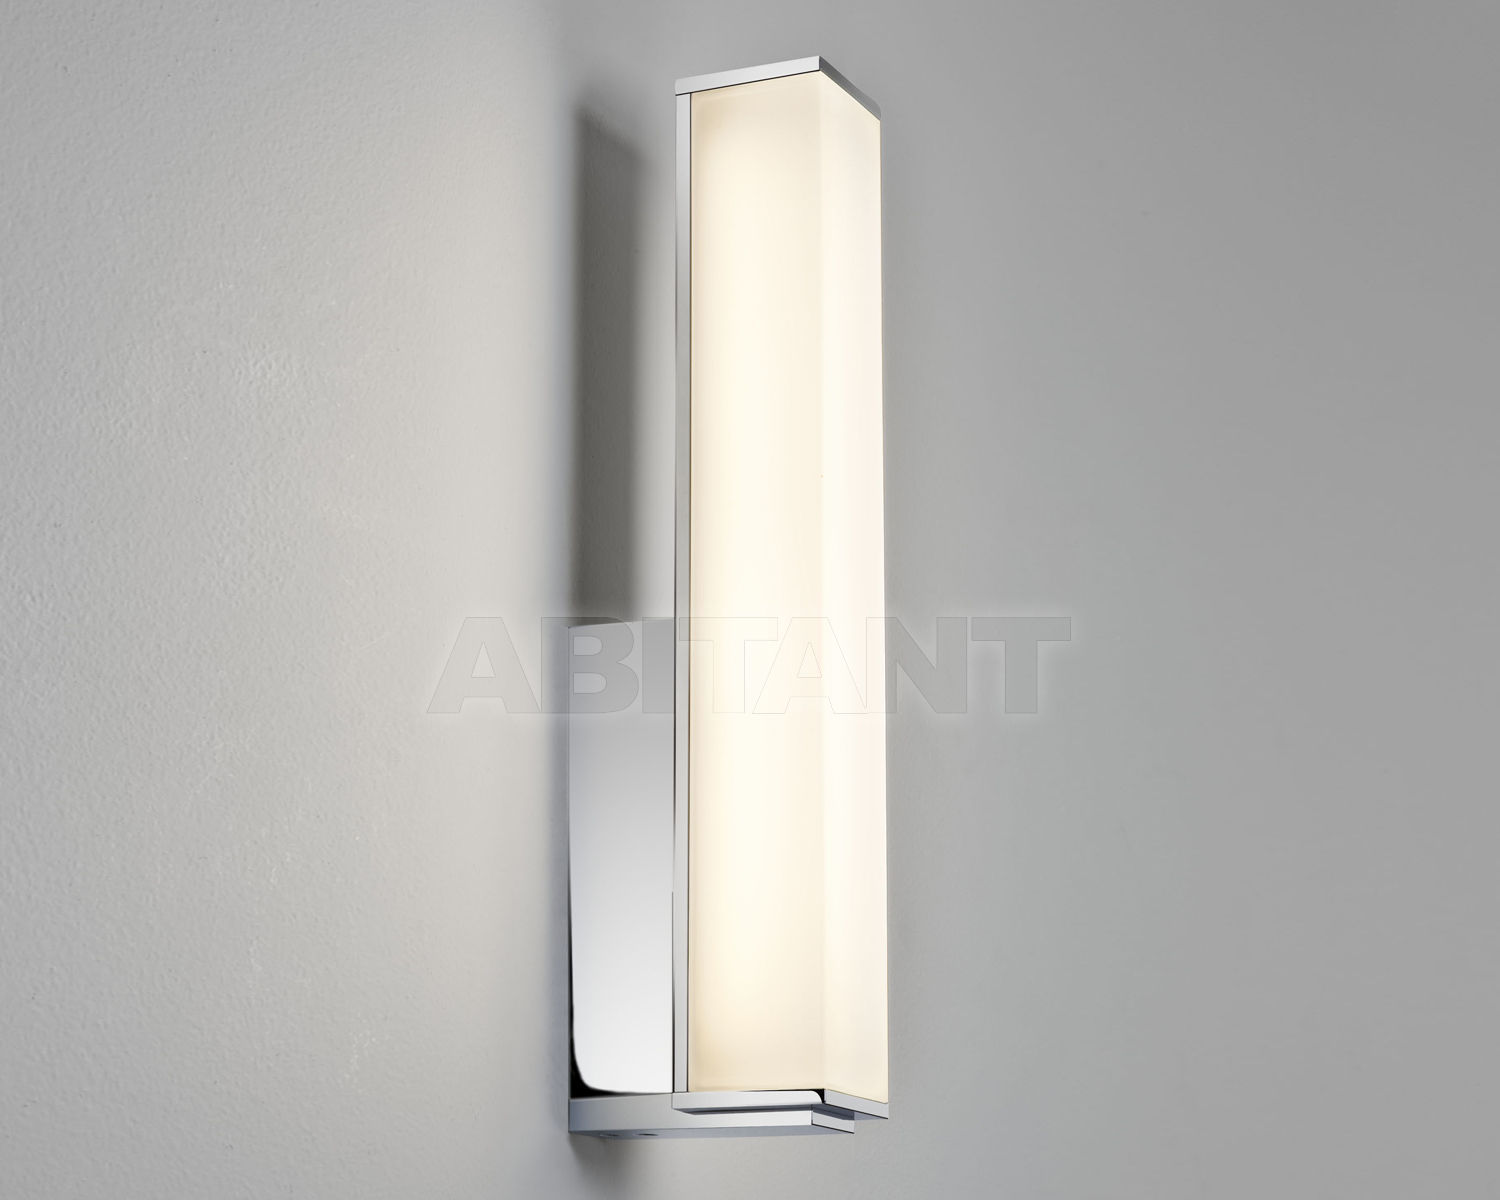 Купить Бра Karla Astro Lighting Bathroom 1321001